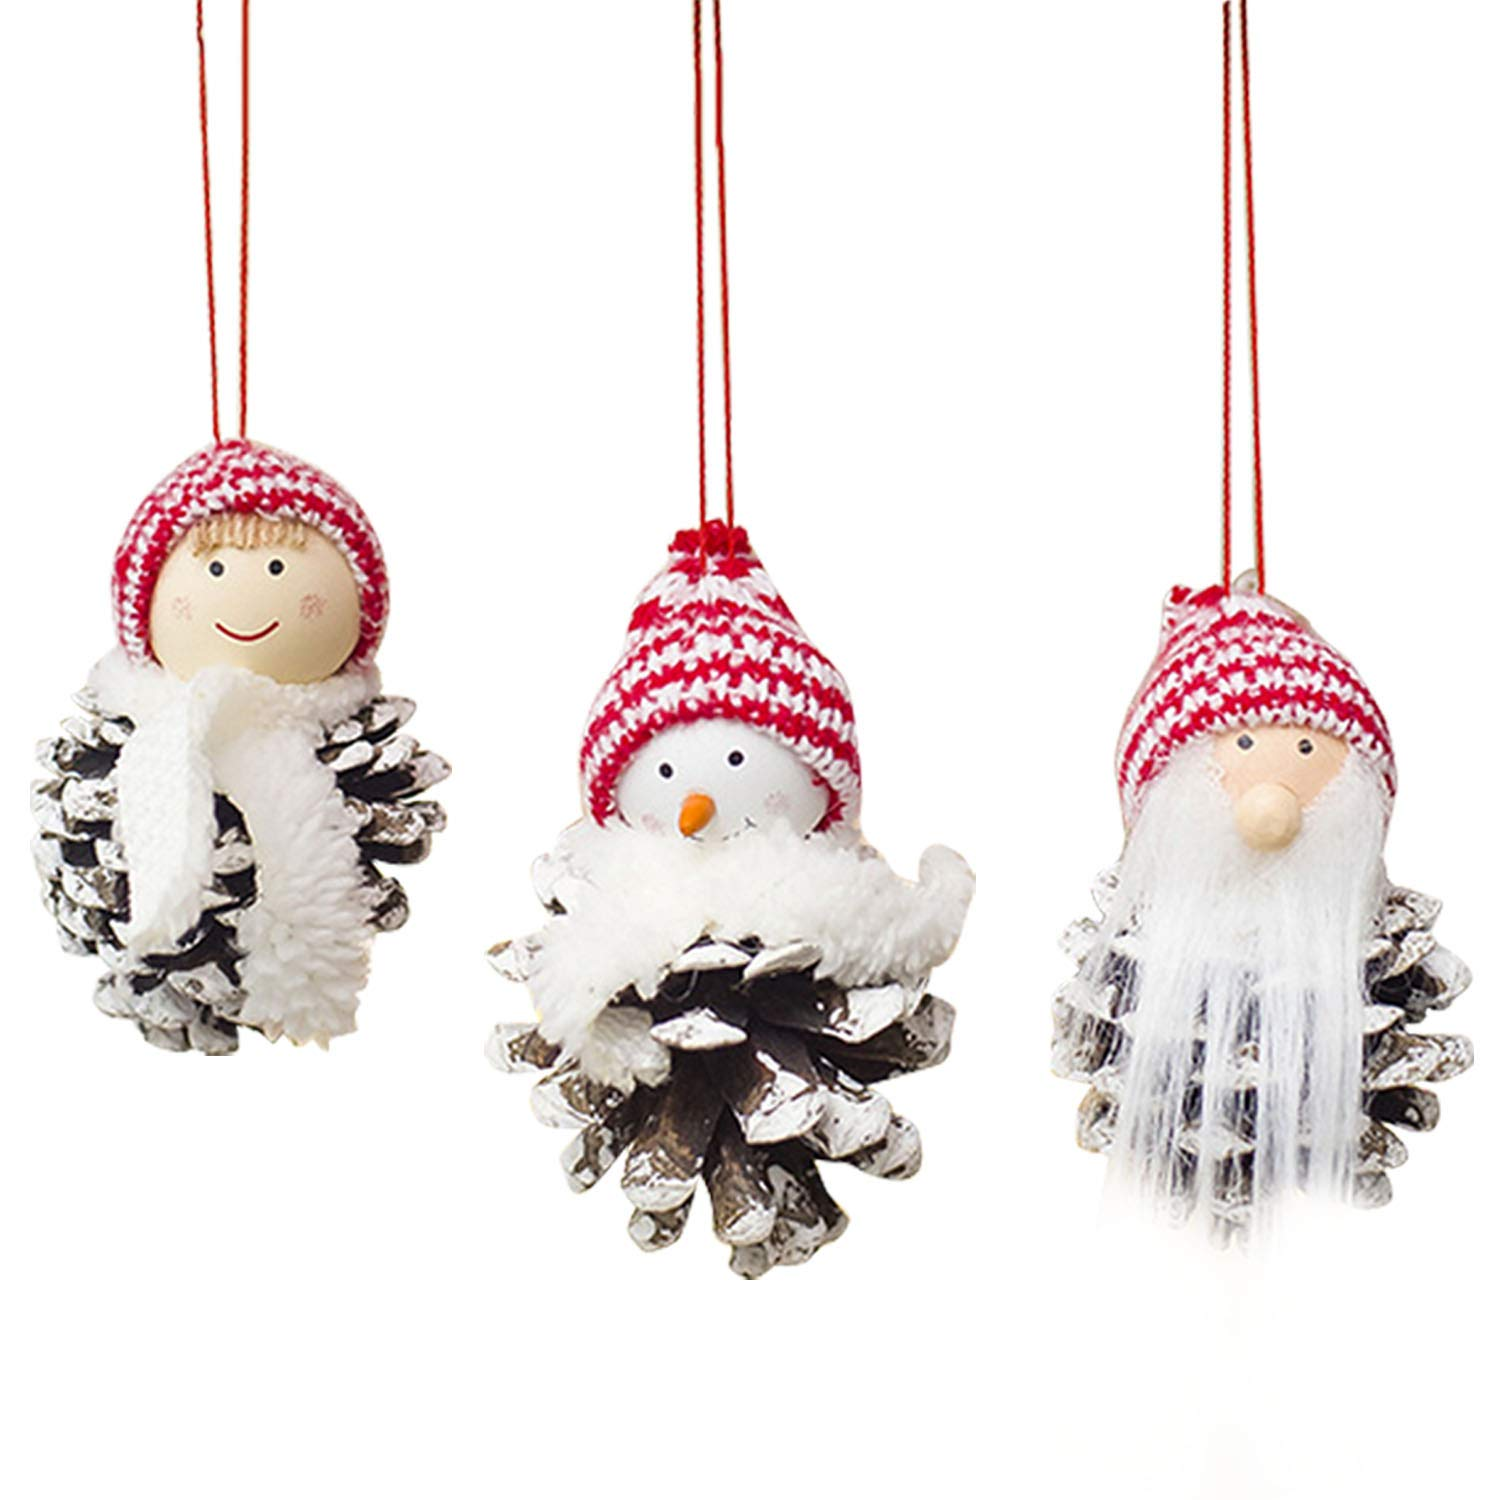 3pcs Small Cute Lovely Christmas Santa Claus Pine Cones Doll Hanging Ornaments Home Xmas Christmas Tree Pendant Decorations Style B Migavan